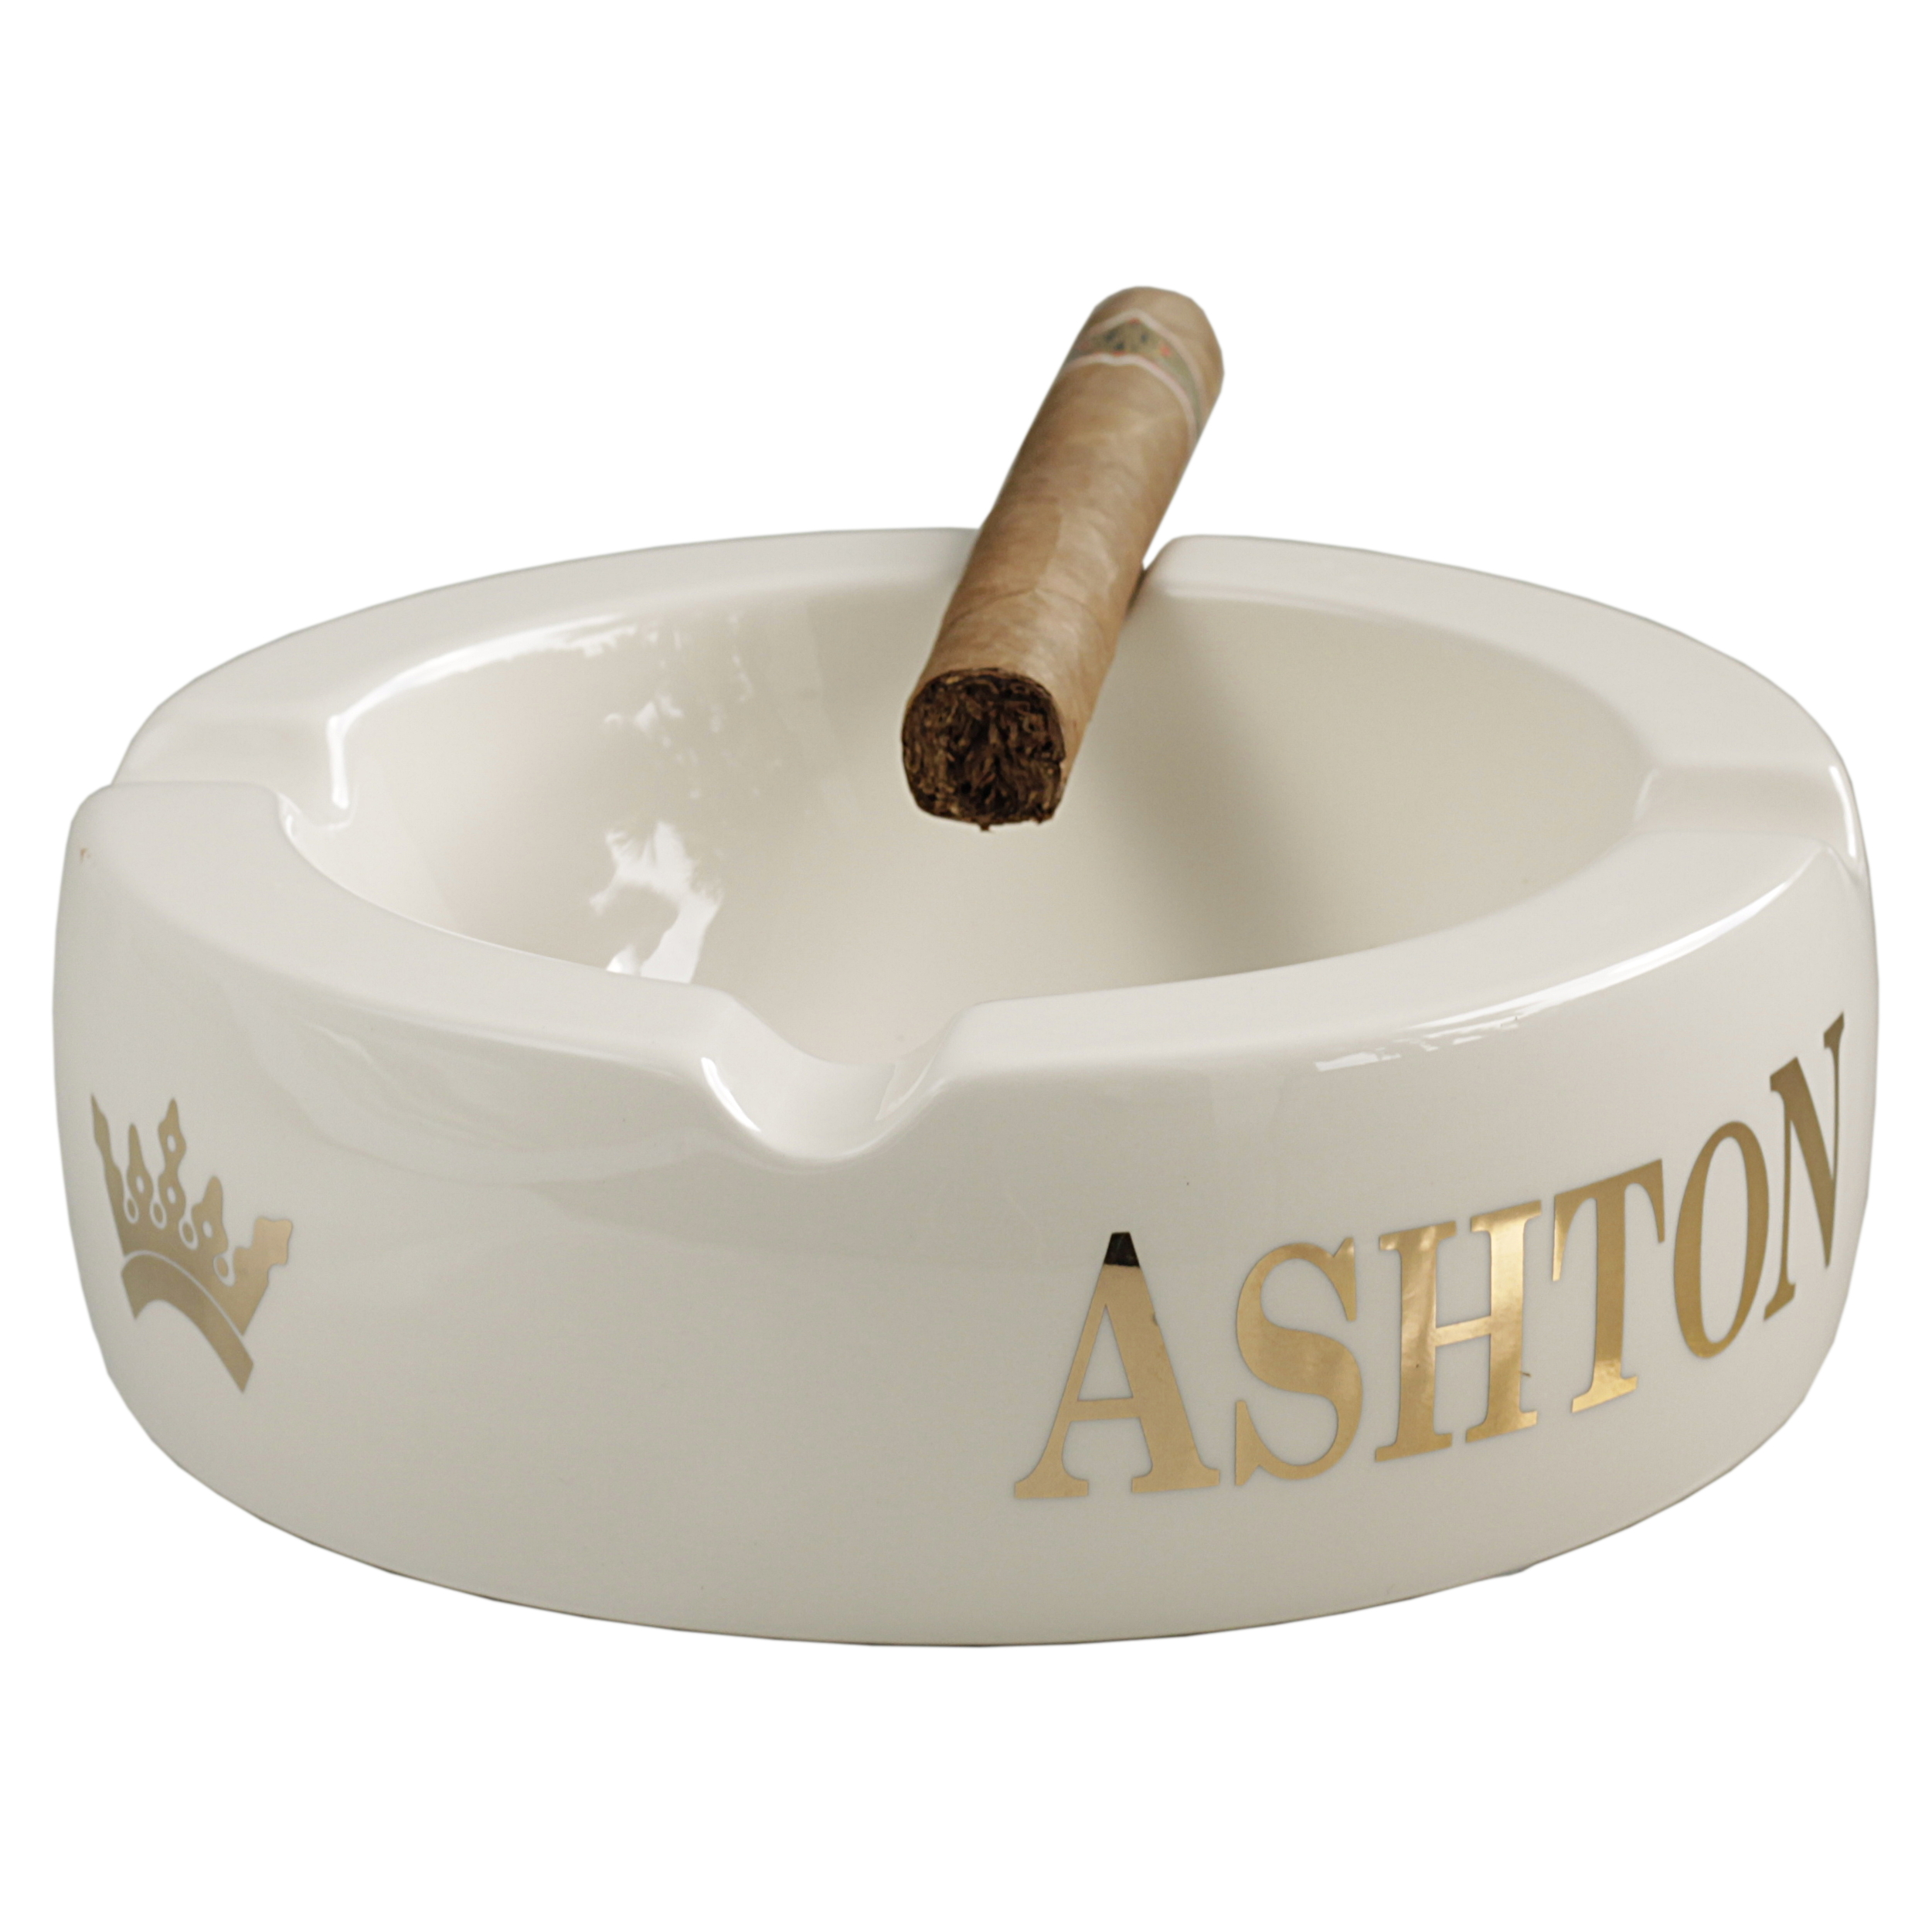 Ashton White Ceramic 4 Cigar Round Ashtray